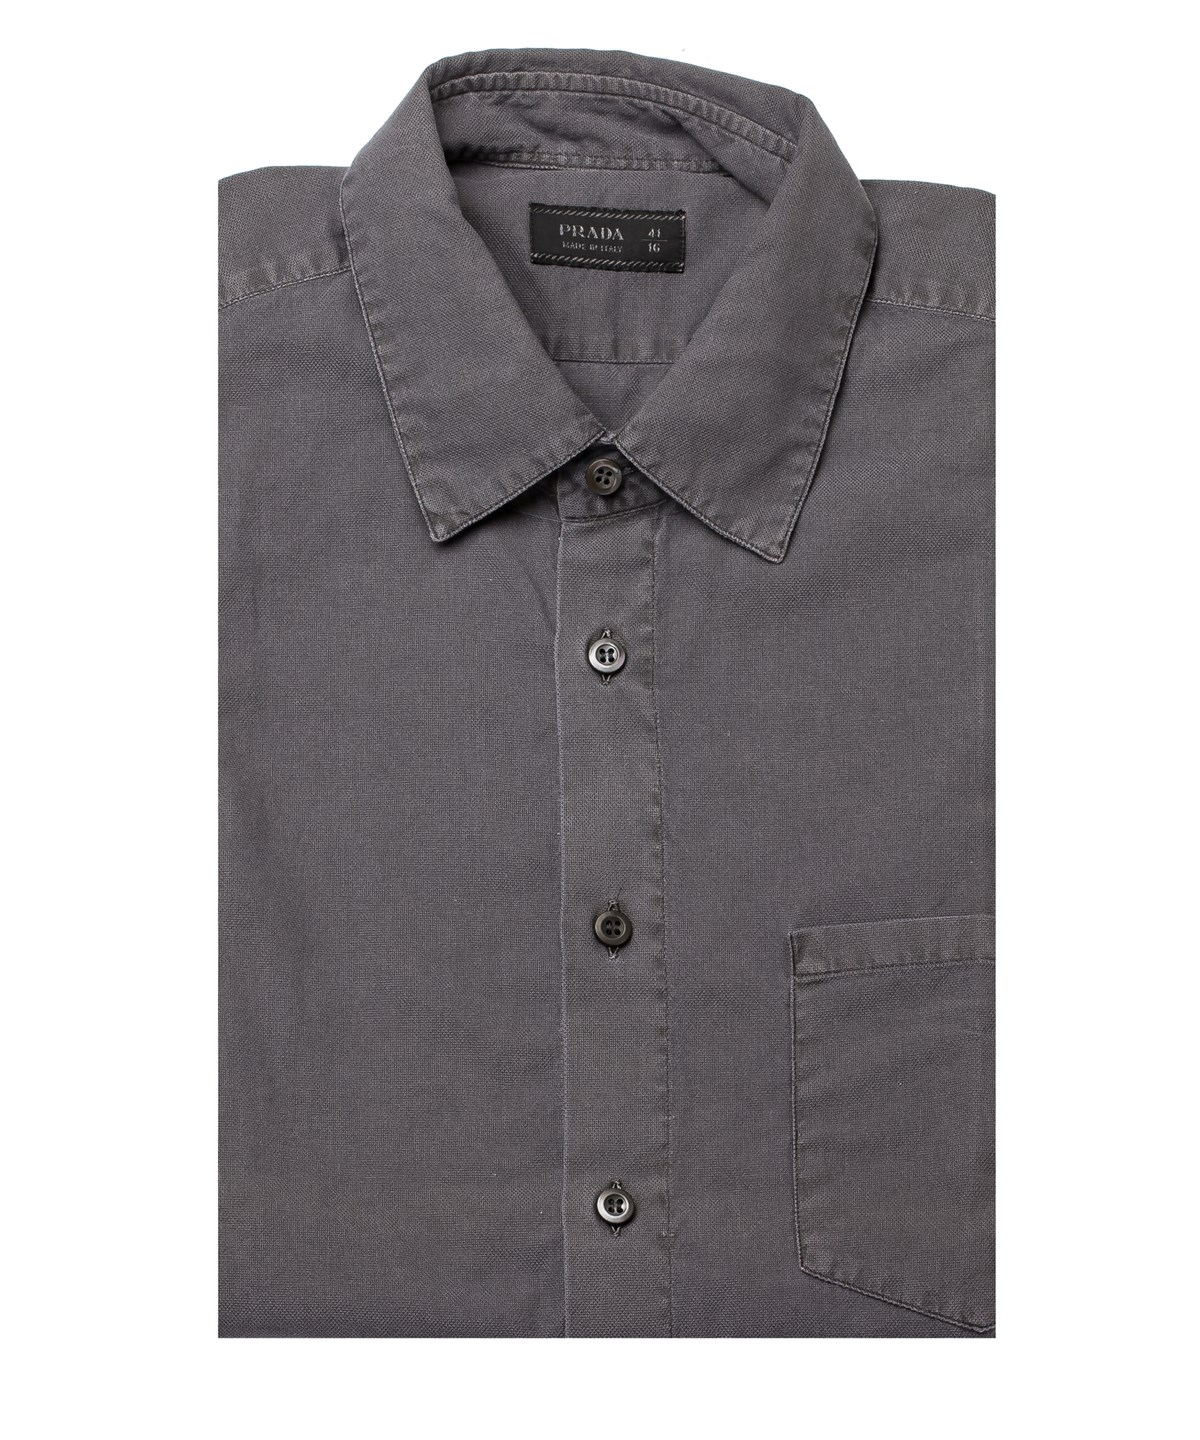 Prada Men's Short Sleeve Semi-Spread Collar Dress Shirt Grey